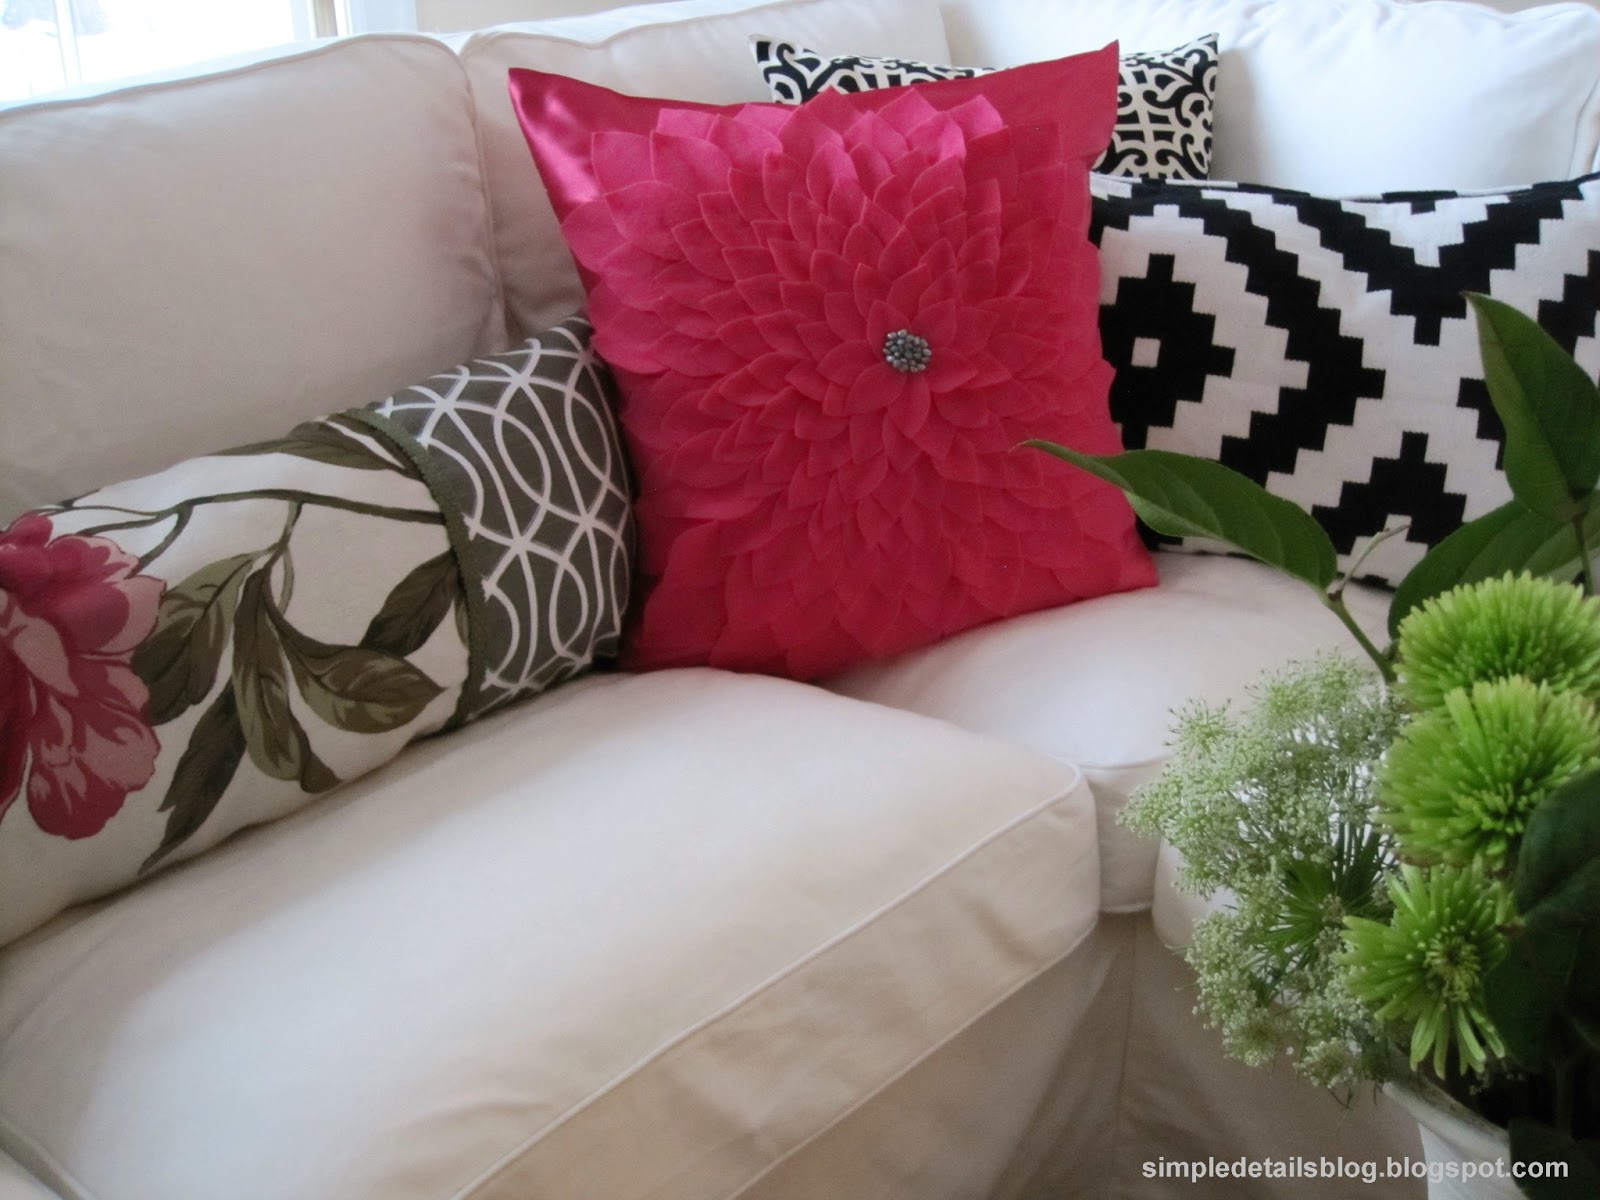 Simple Details Diy Flower Petal Pillow